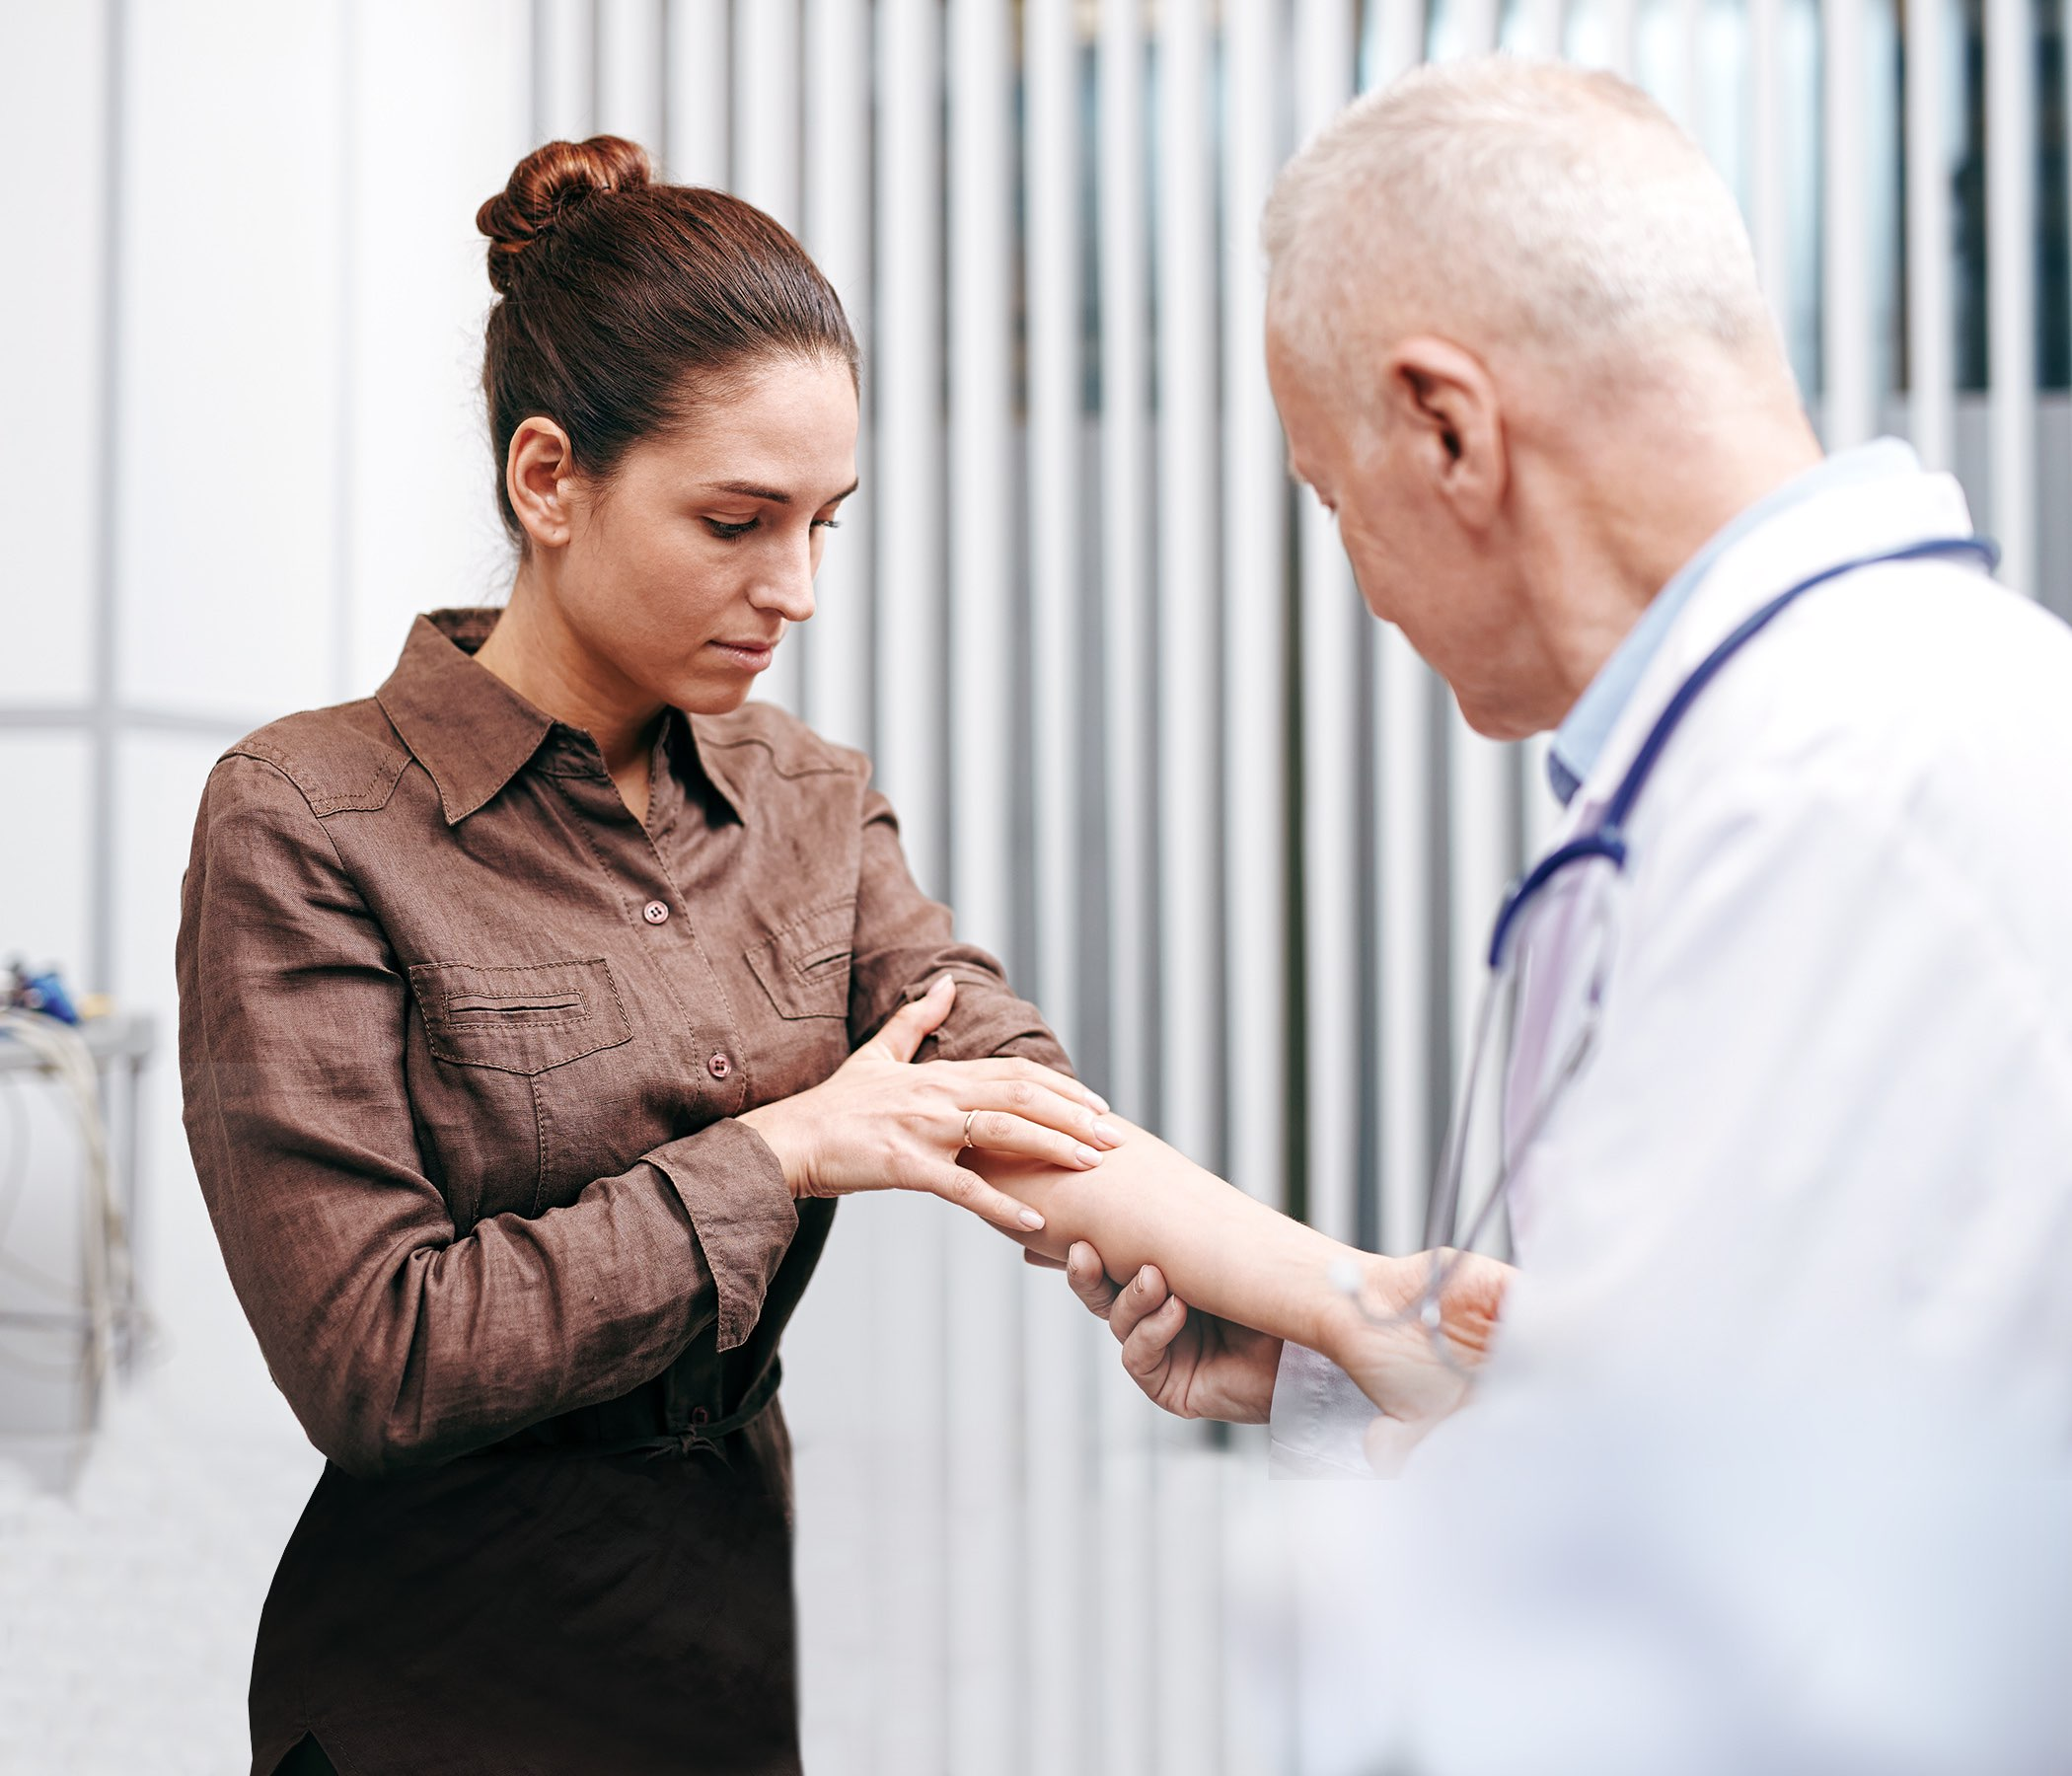 Young sick woman showing her arm to doctor while visiting clinics